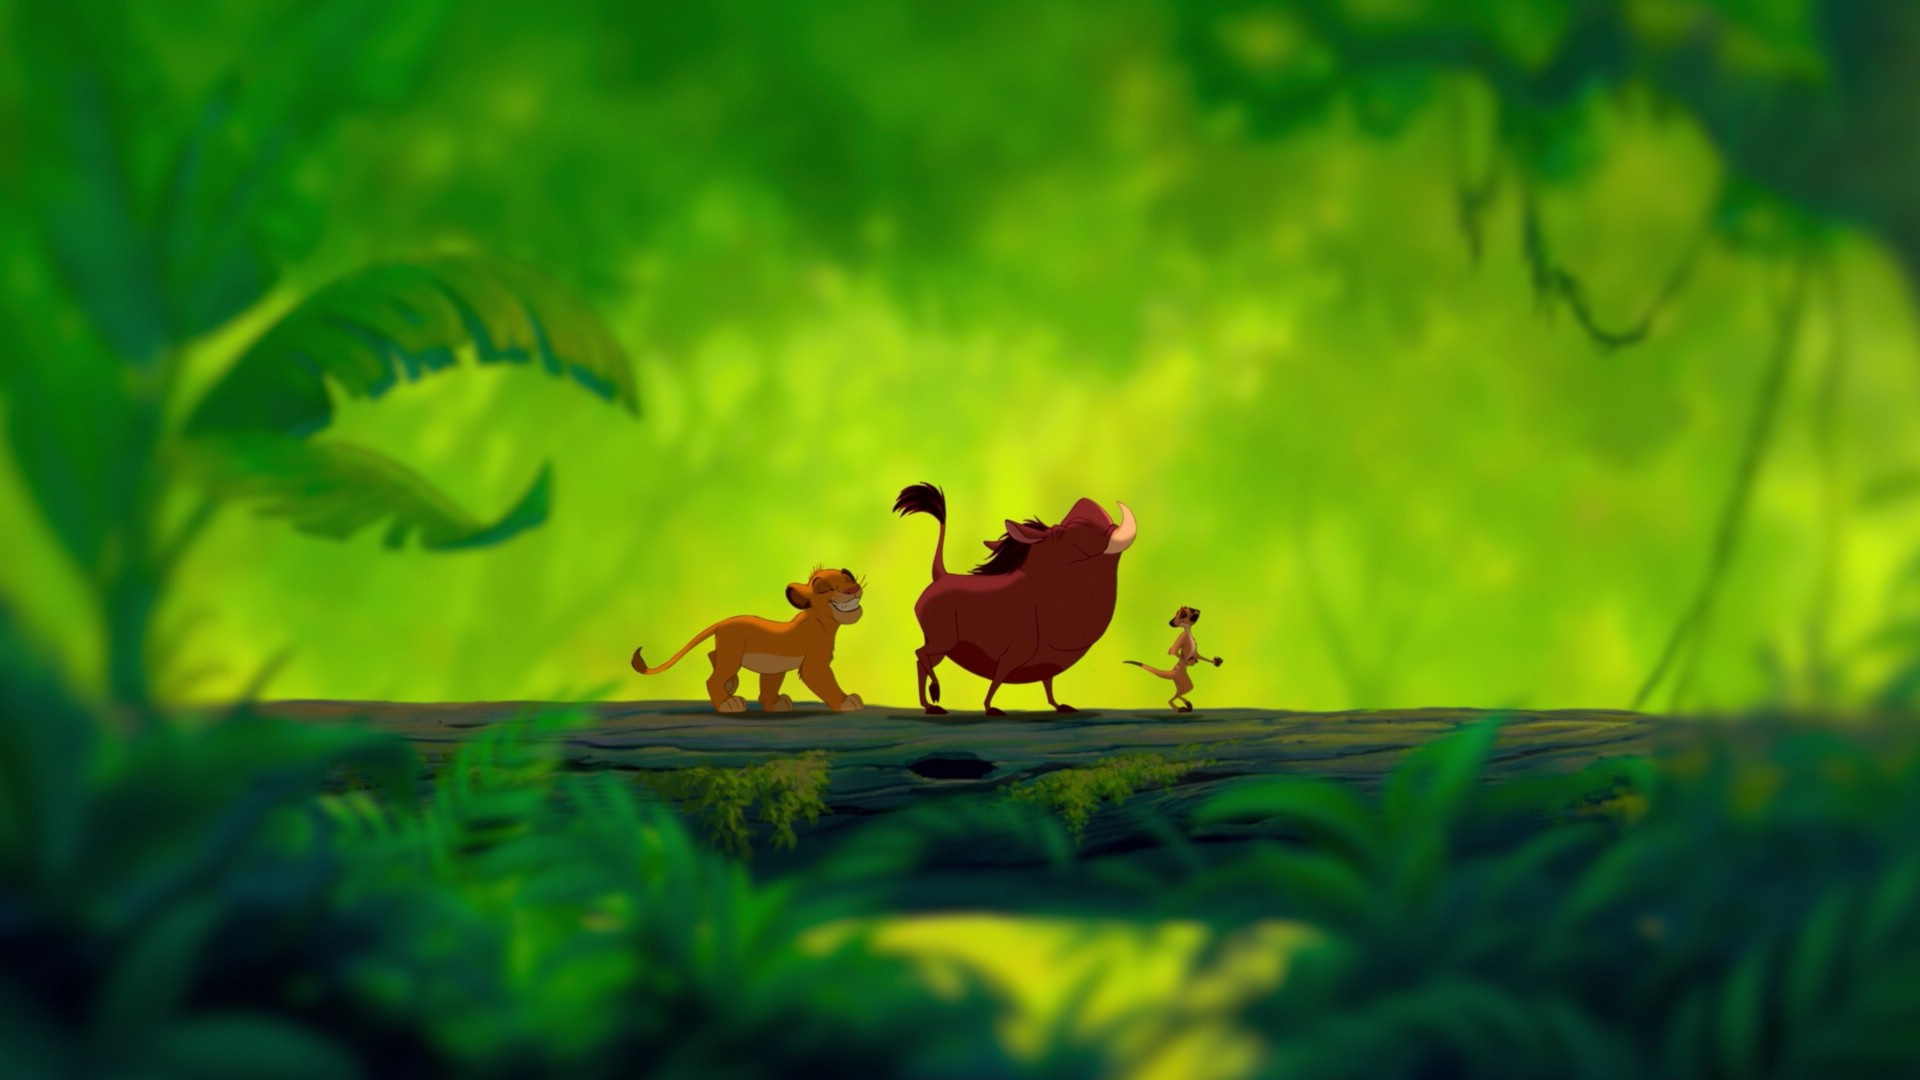 The lion king hd wallpaper background image 1920x1080 - King wallpaper ...